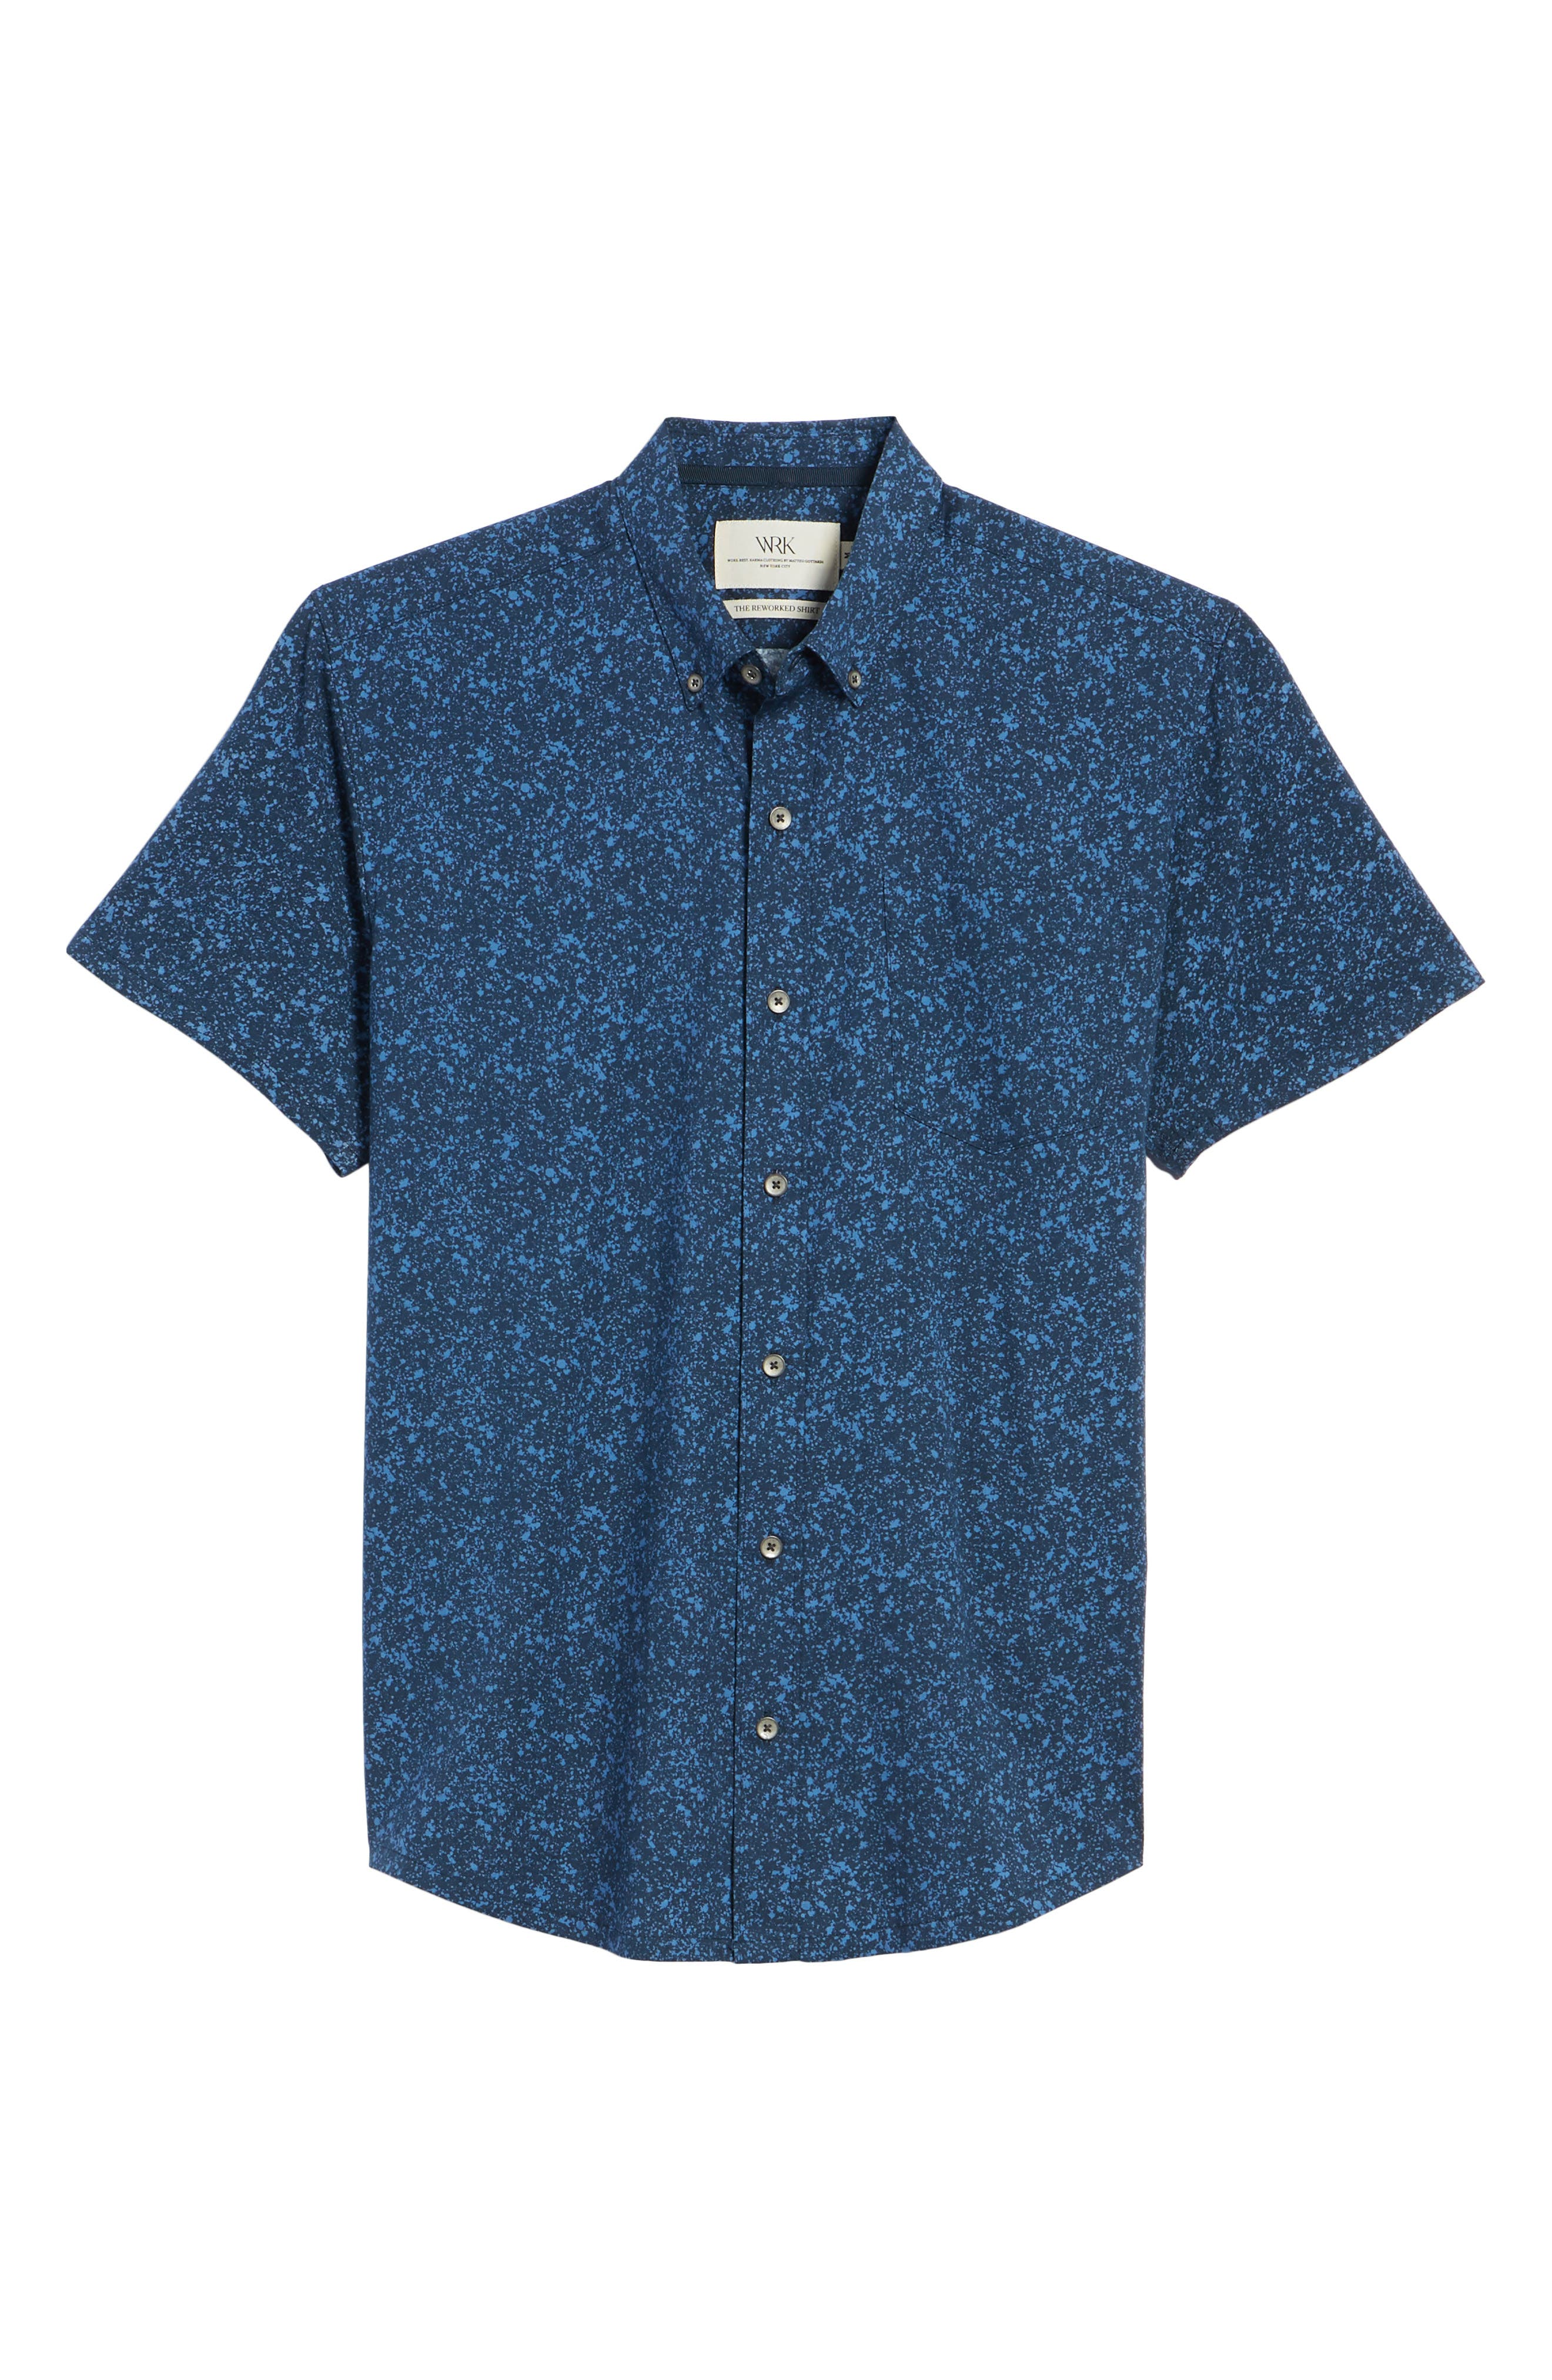 Slim Fit Splatter Sport Shirt,                             Alternate thumbnail 6, color,                             410